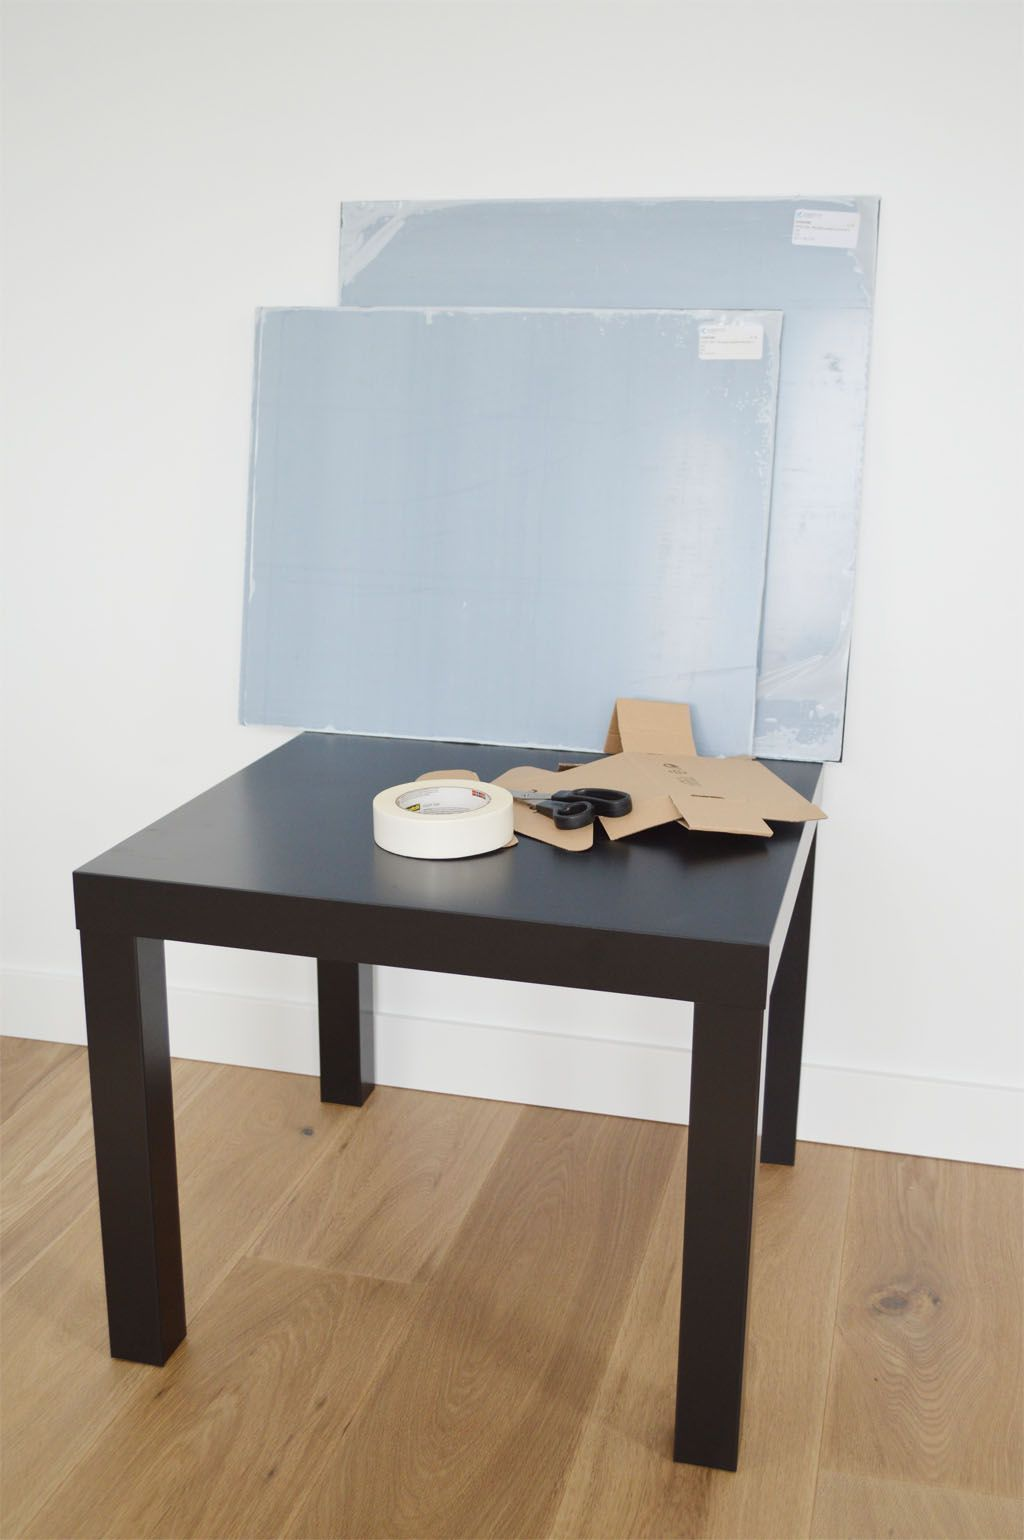 Plexiglas Couchtisch Ikea Hack Lack Table With Plexiglas Ikea Hack Lack Tisch Mit